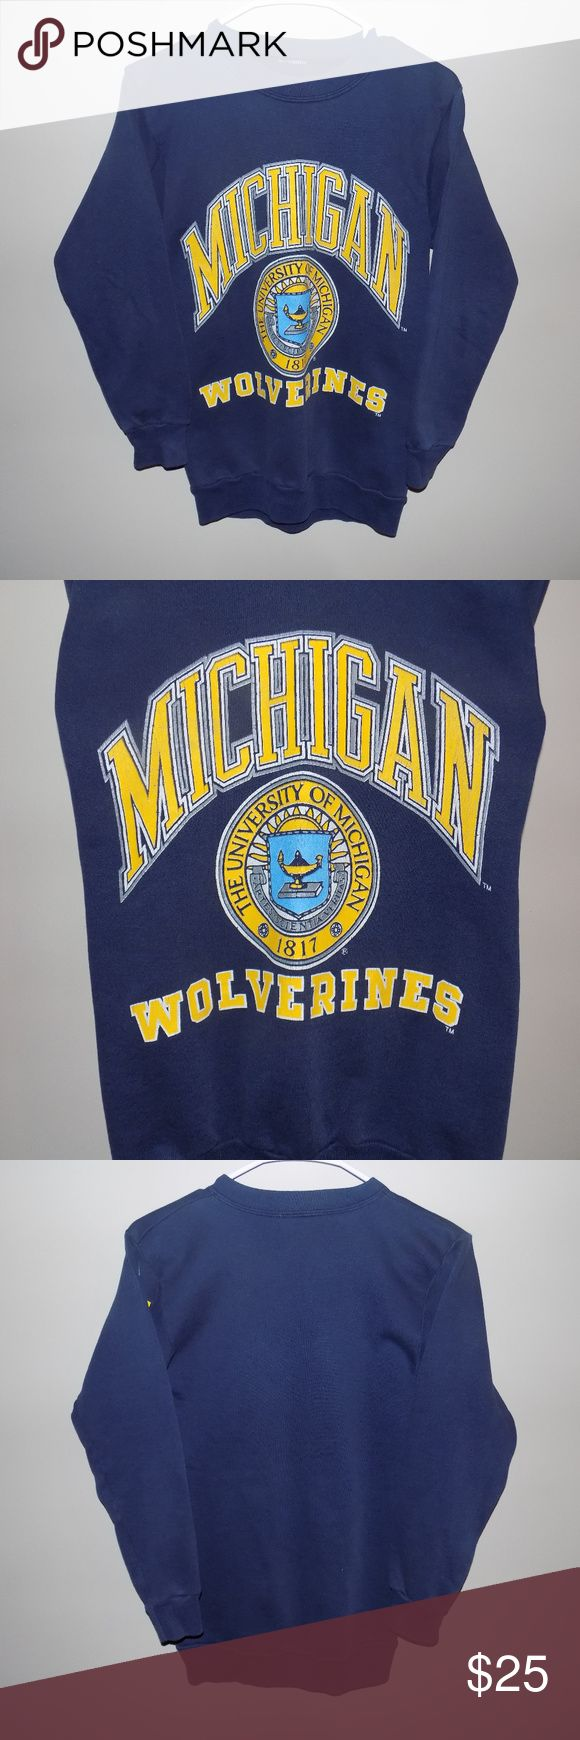 Vintage Unisex Michigan Wolverines Crewneck Vintage Unisex Michigan Wolverines Crewneck Sweatshirt! Still in great condition (9/10)! The tag is missing, but it fits like a Small or a Medium. The graphic on the front does have very light cracking, but is still in great condition and it has a super cool vintage feel to it! Vintage Sweaters Crewneck